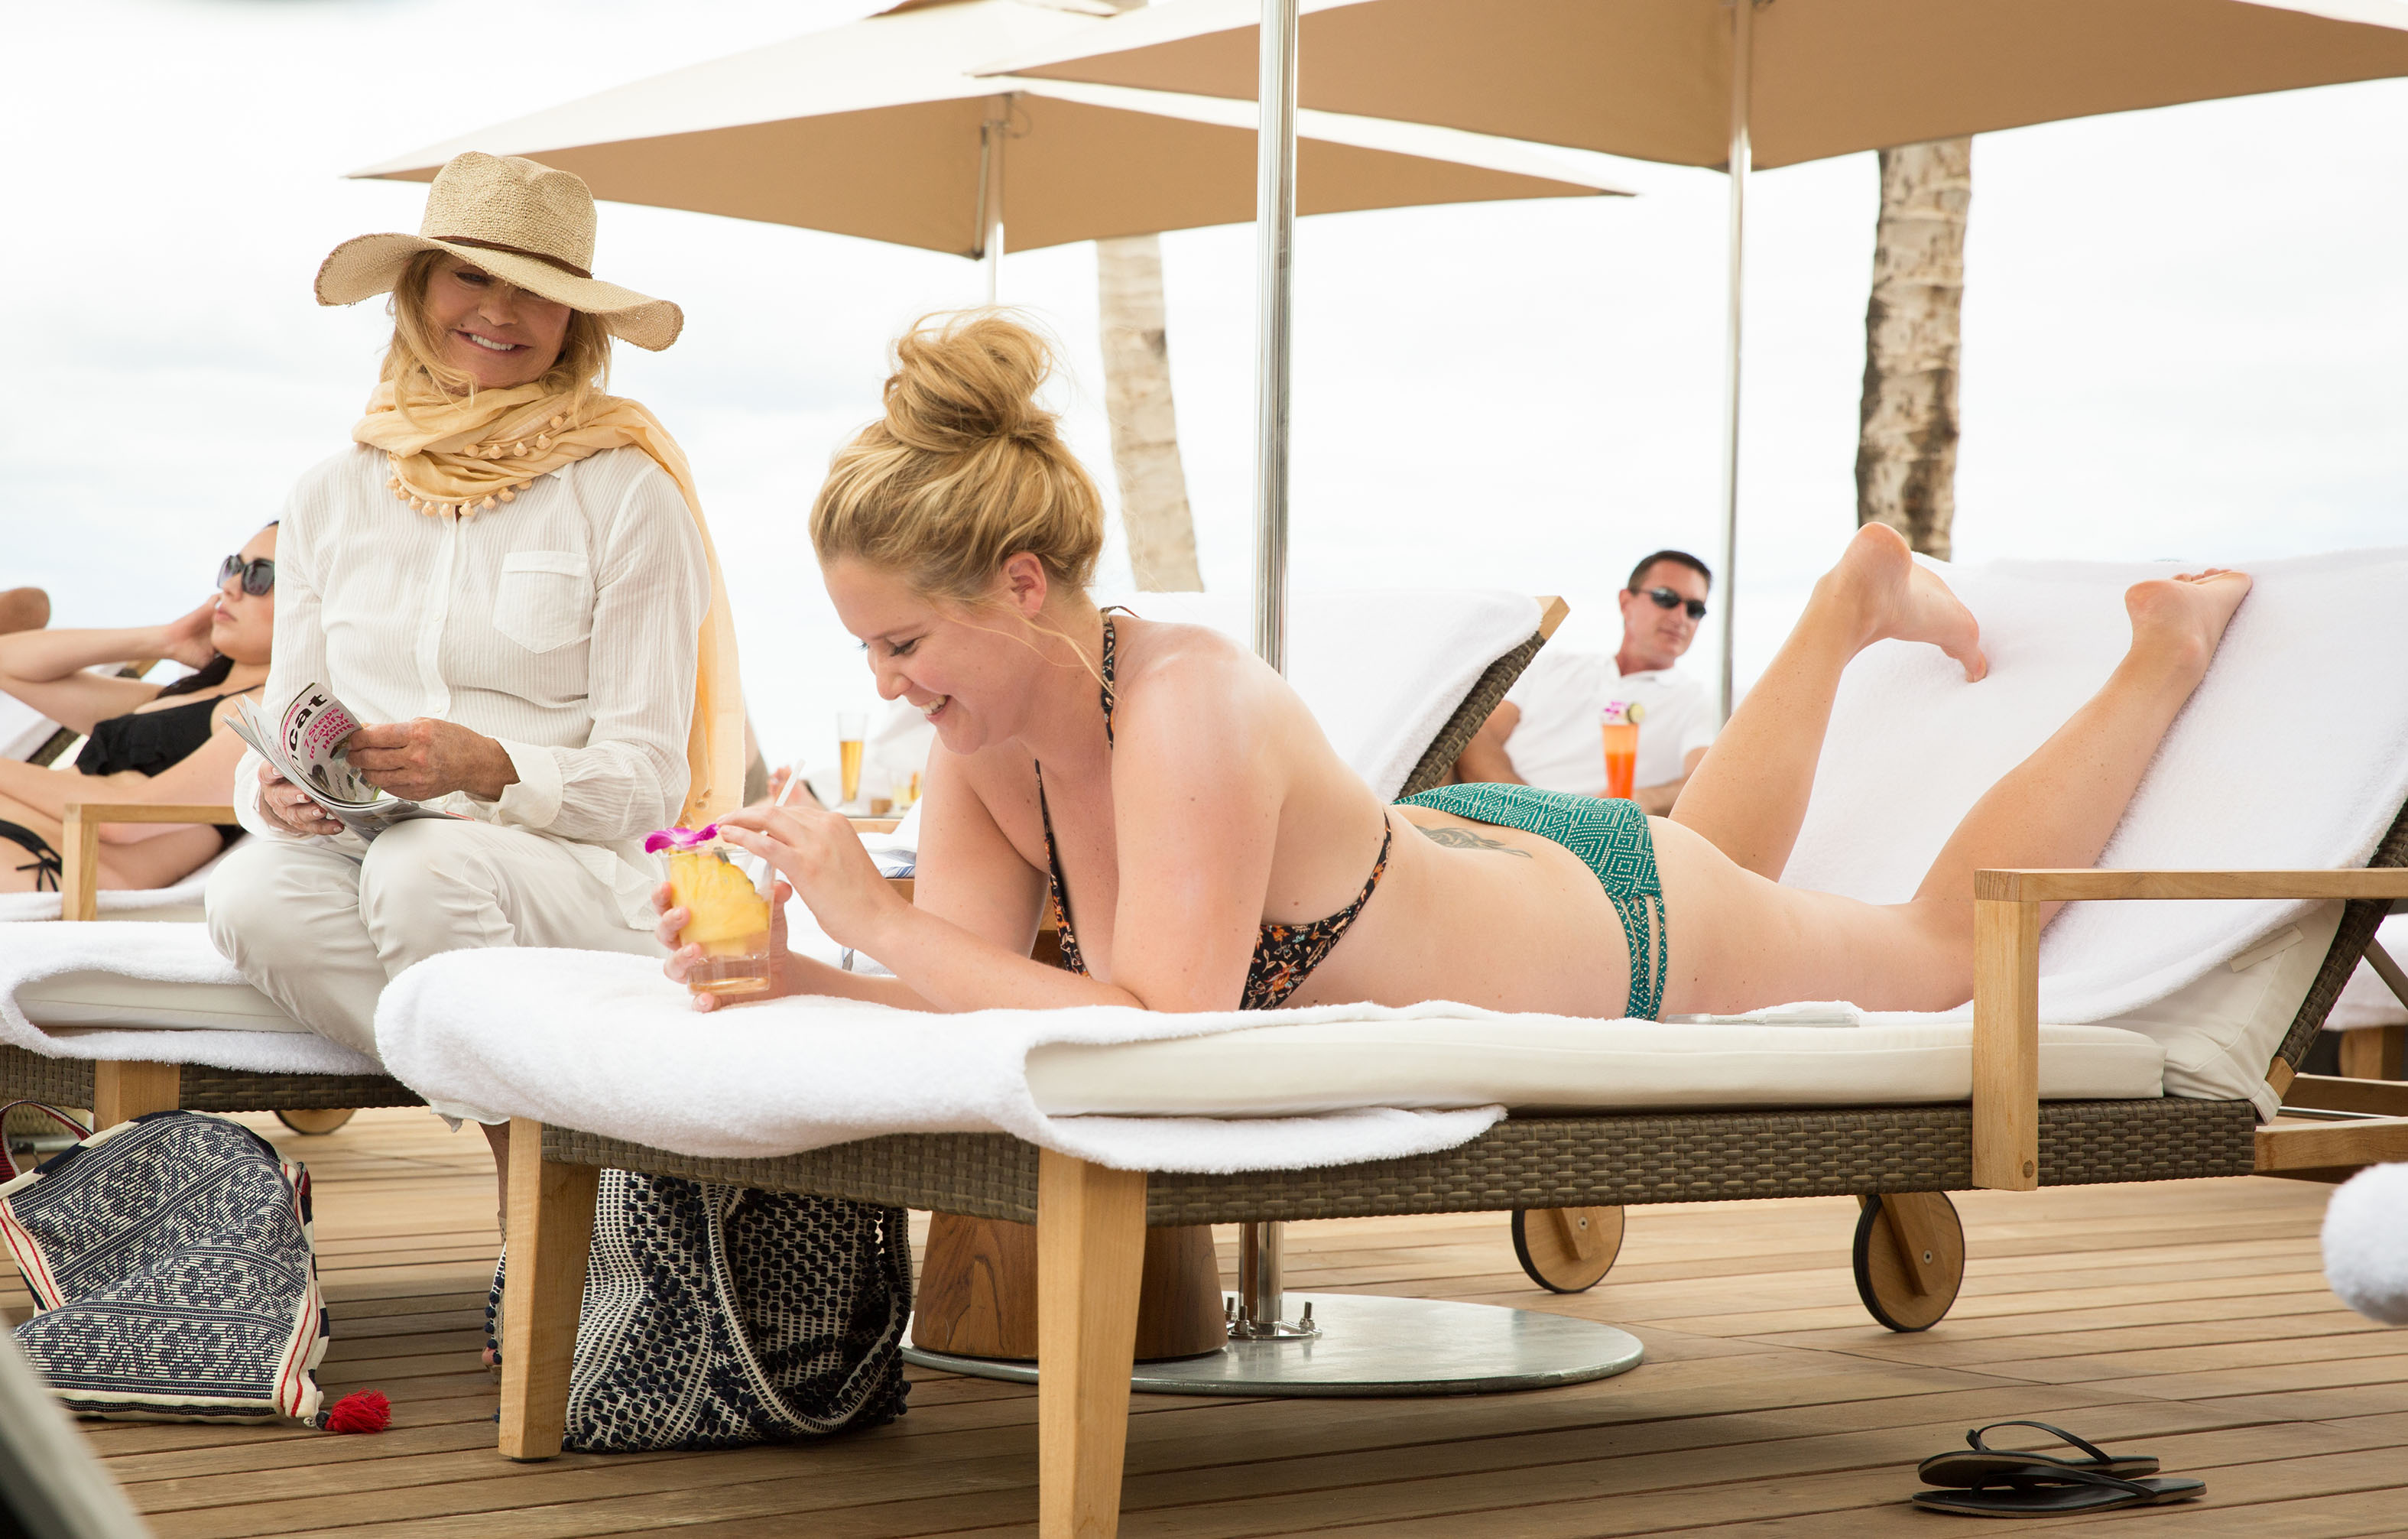 An Interview with Amy Schumer & Goldie Hawn on the New 'Snatched' Movie